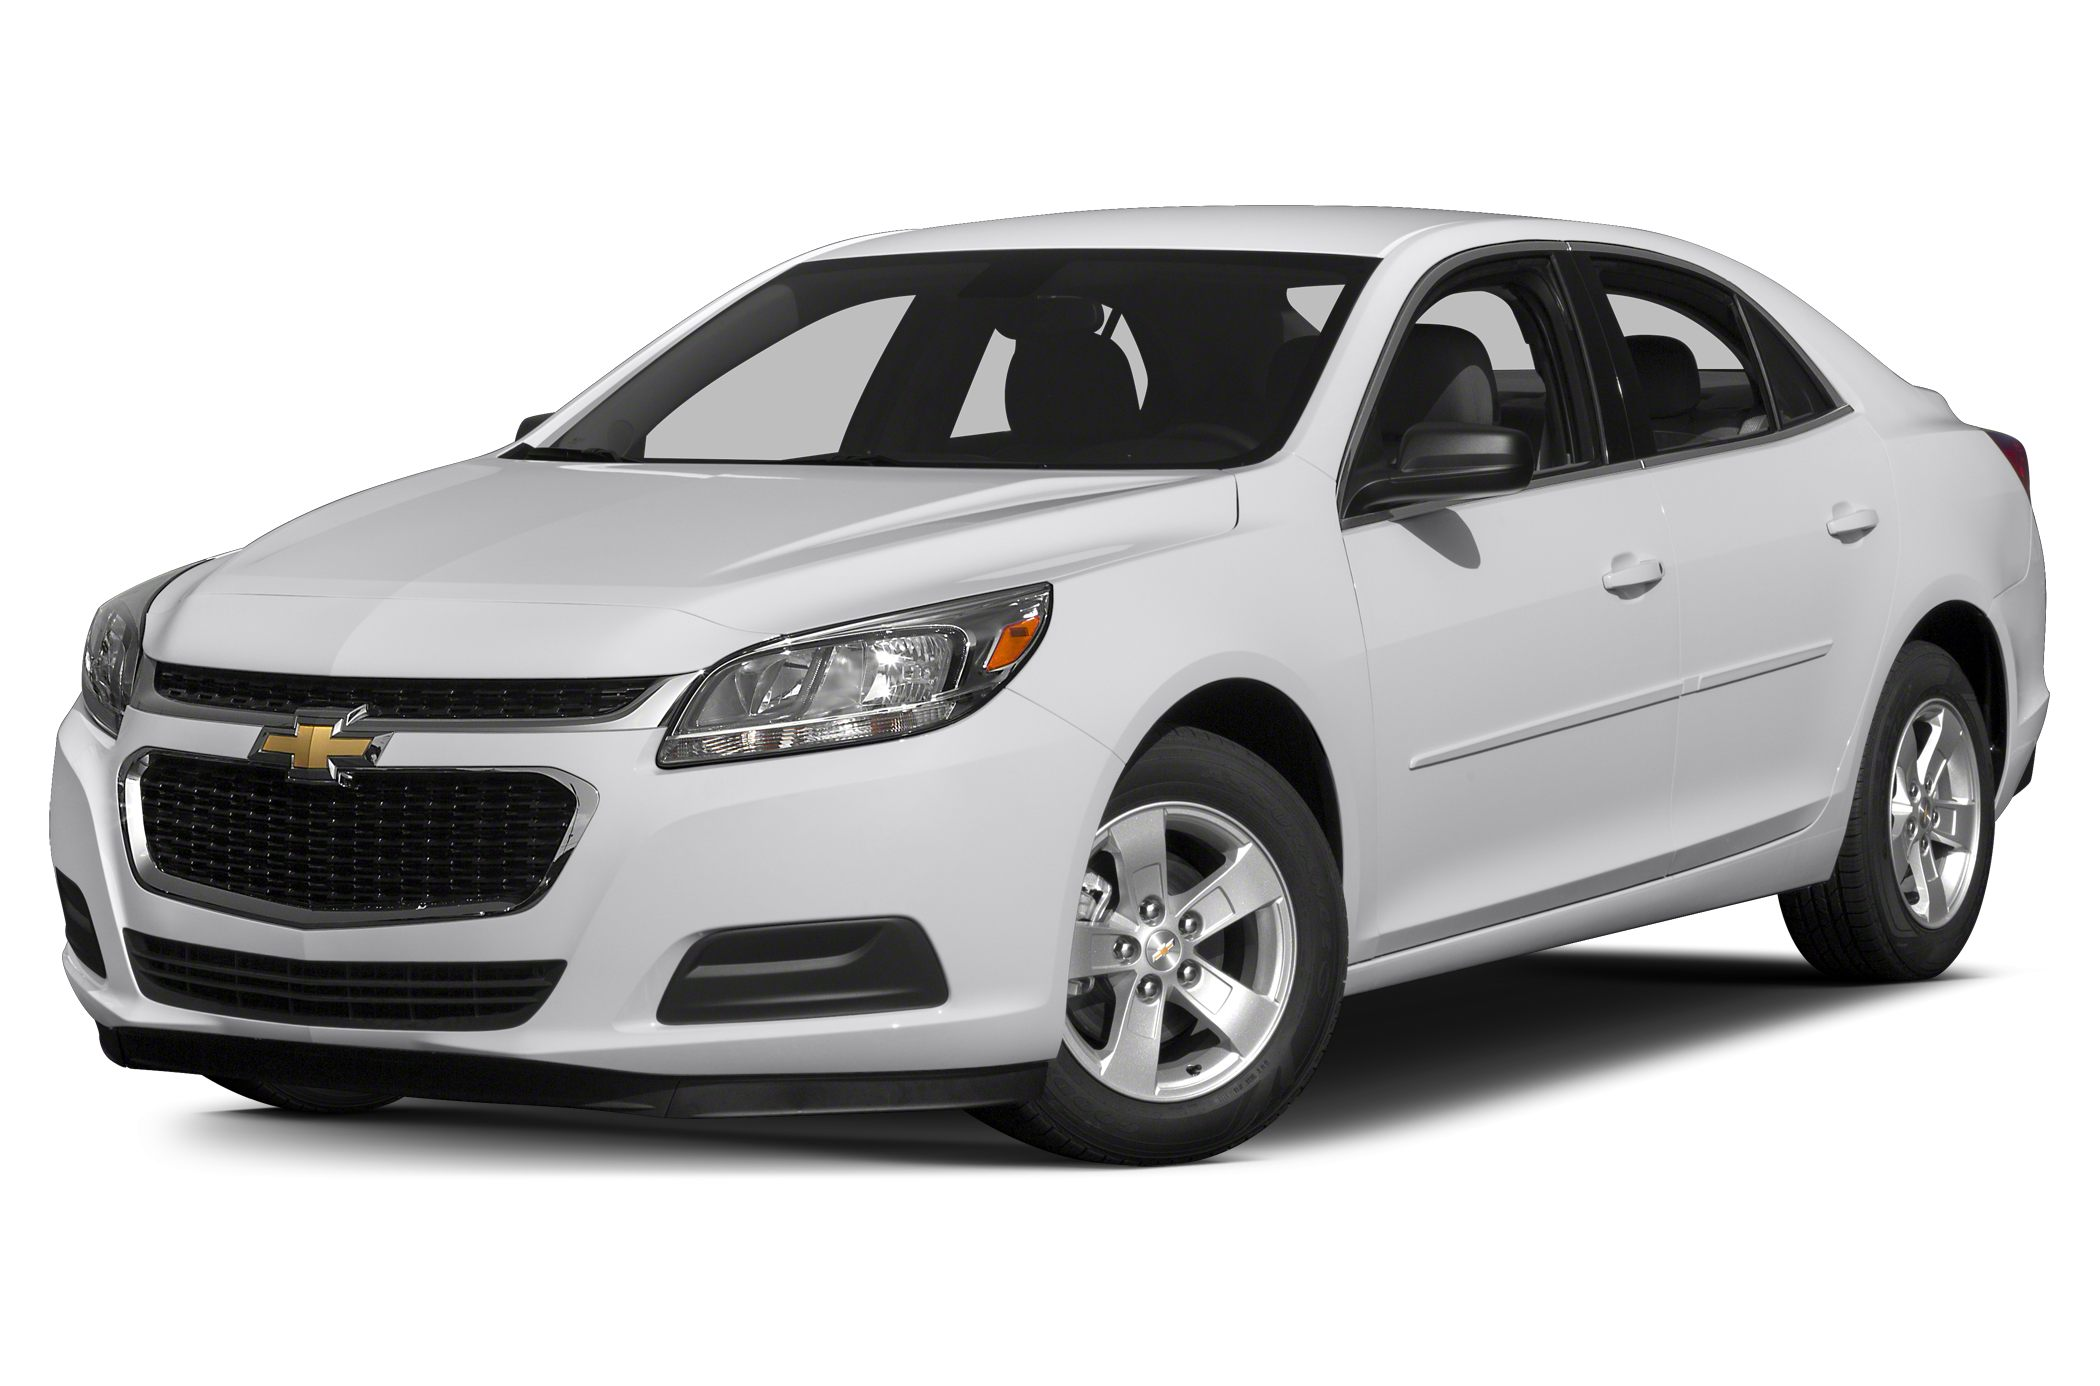 2015 Chevrolet Malibu 1LT Sedan for sale in Westfield for $26,380 with 0 miles